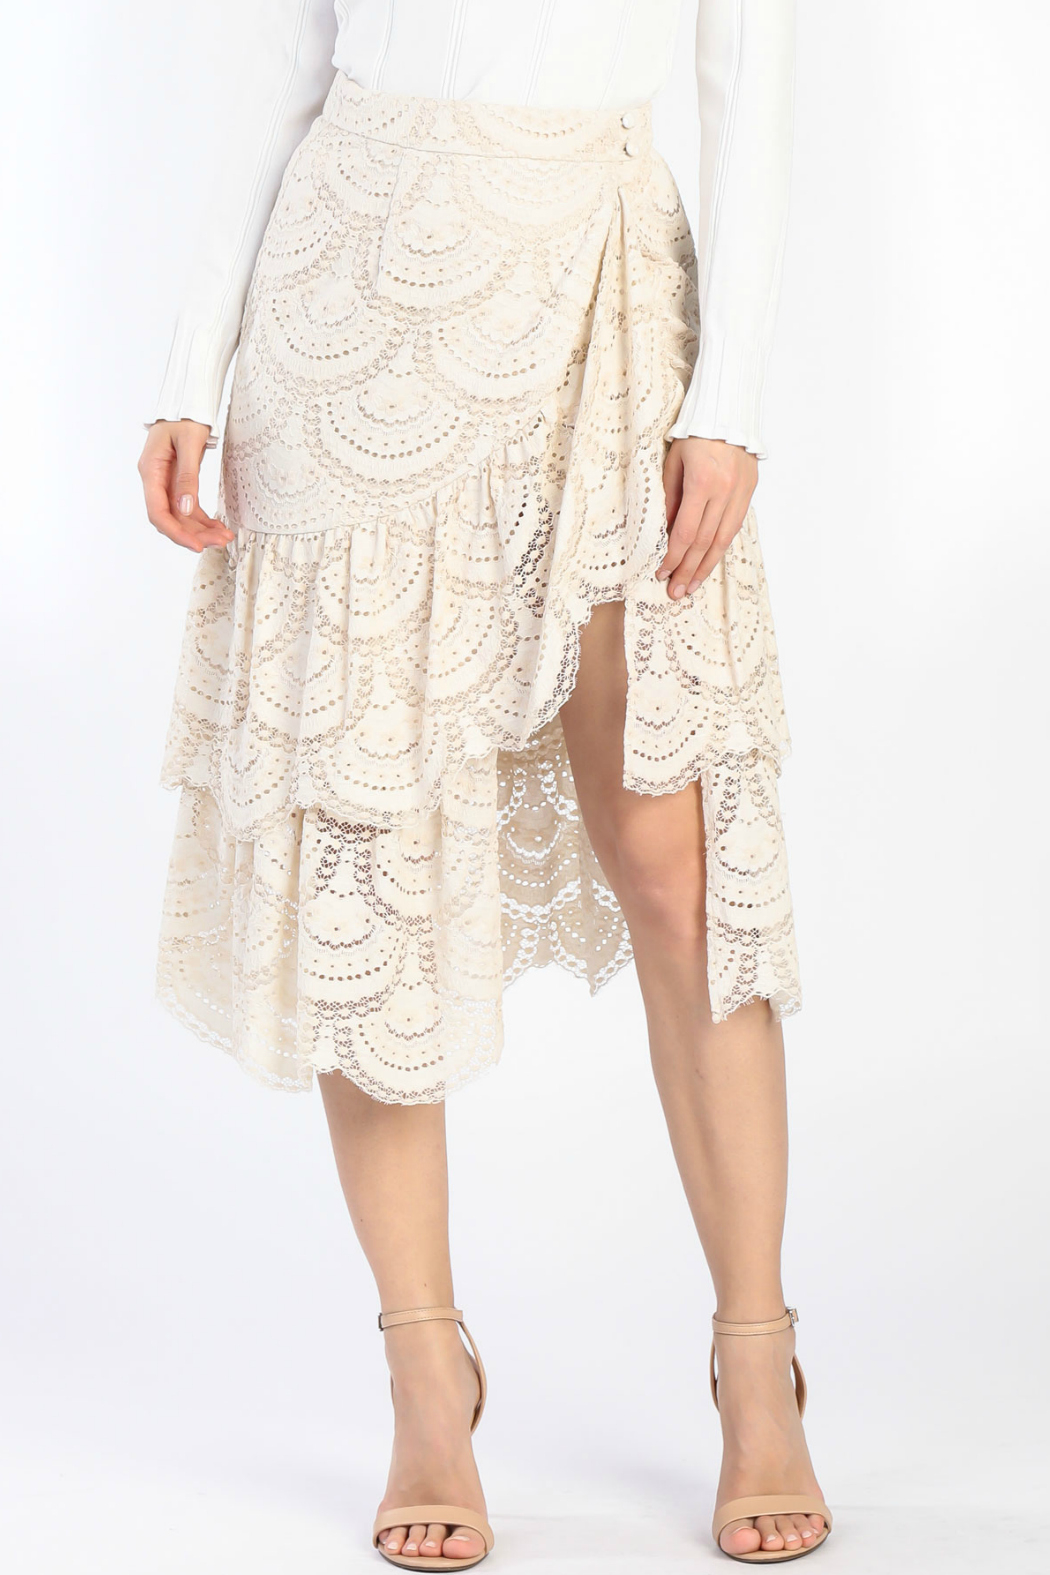 Current Air Tiered Ruffle Lace Skirt - Main Image